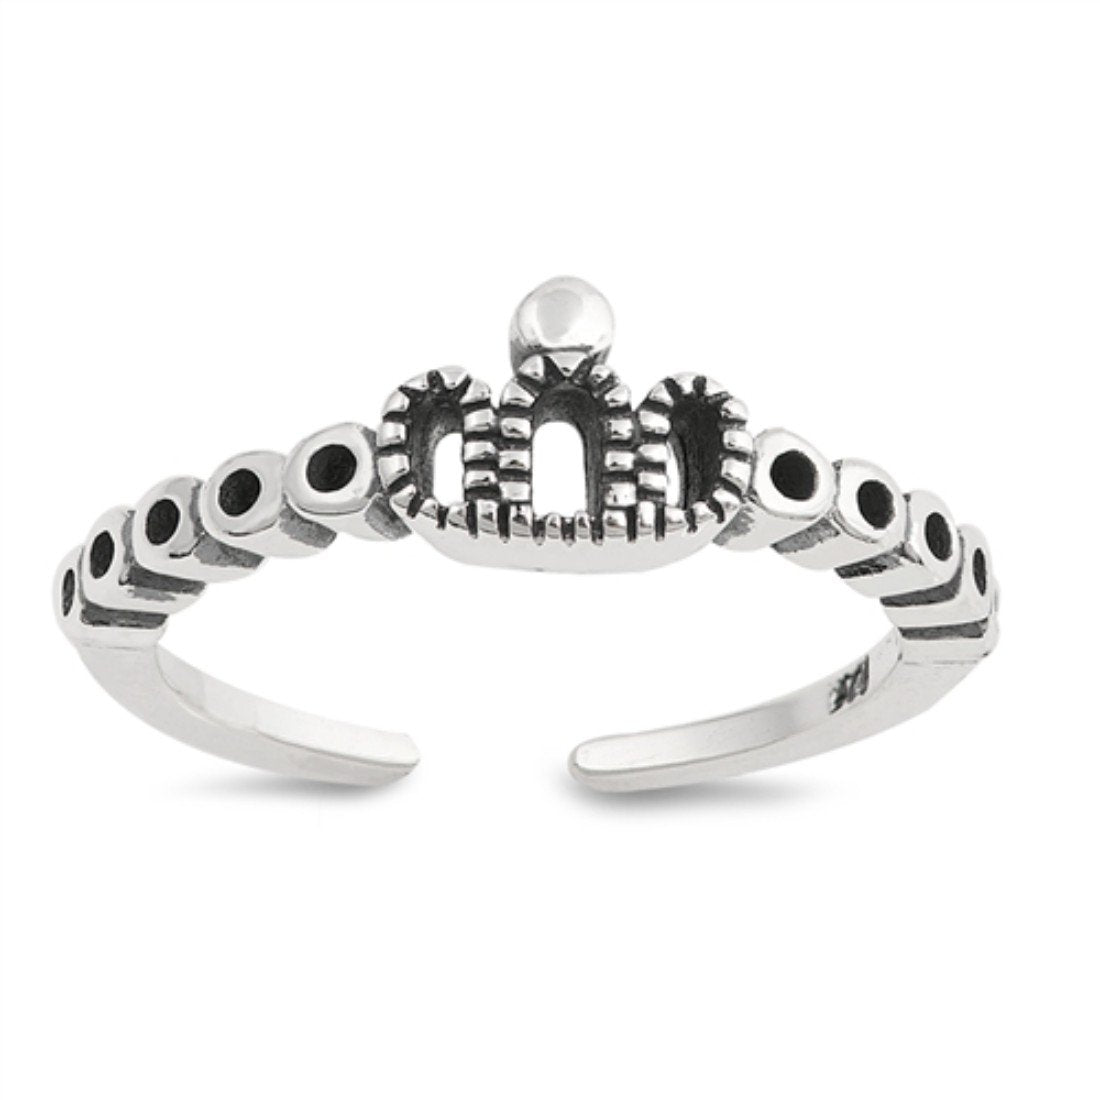 Mini Crown Silver Toe Ring Adjustable Band 925 Sterling Silver (5mm)